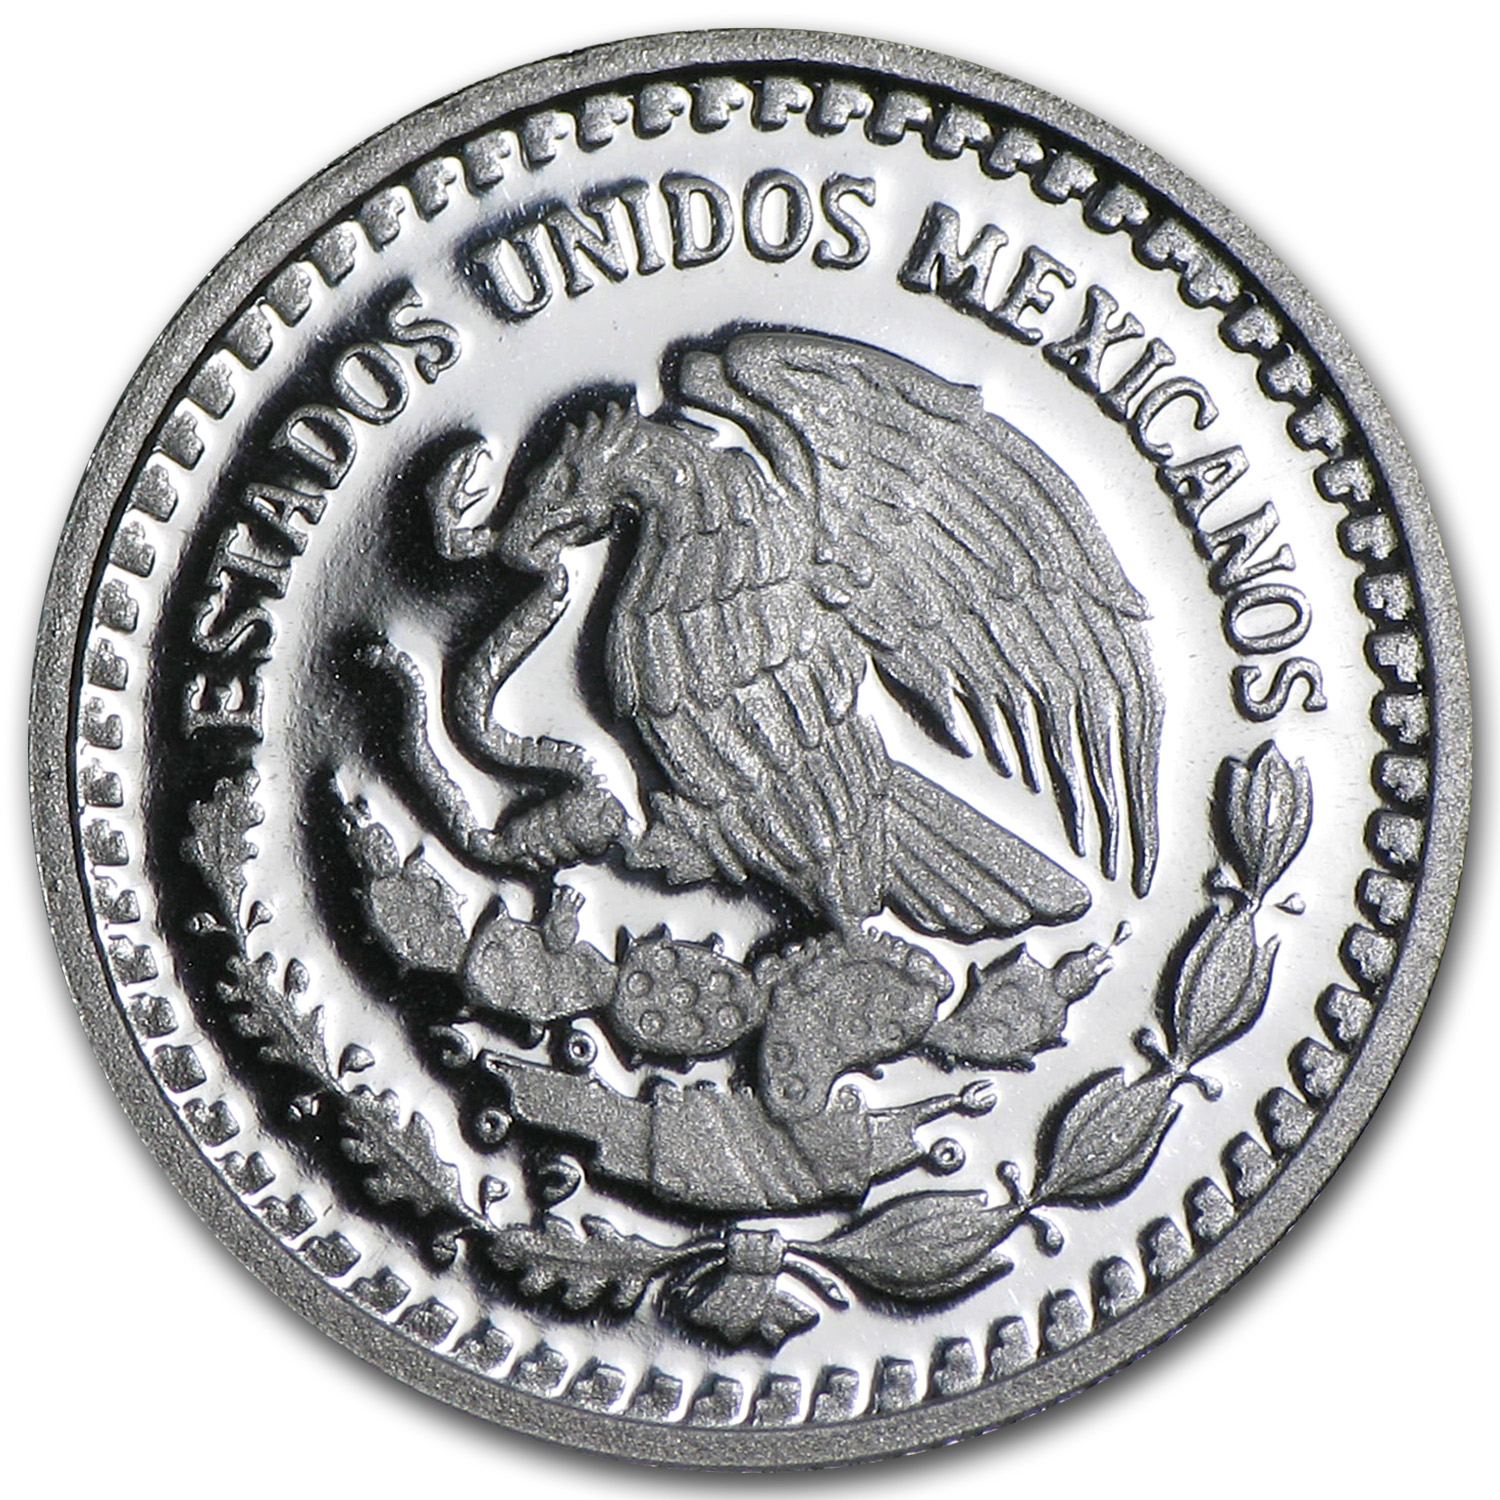 2011 1/20 oz Silver Mexican Libertad - Proof (In Capsule)